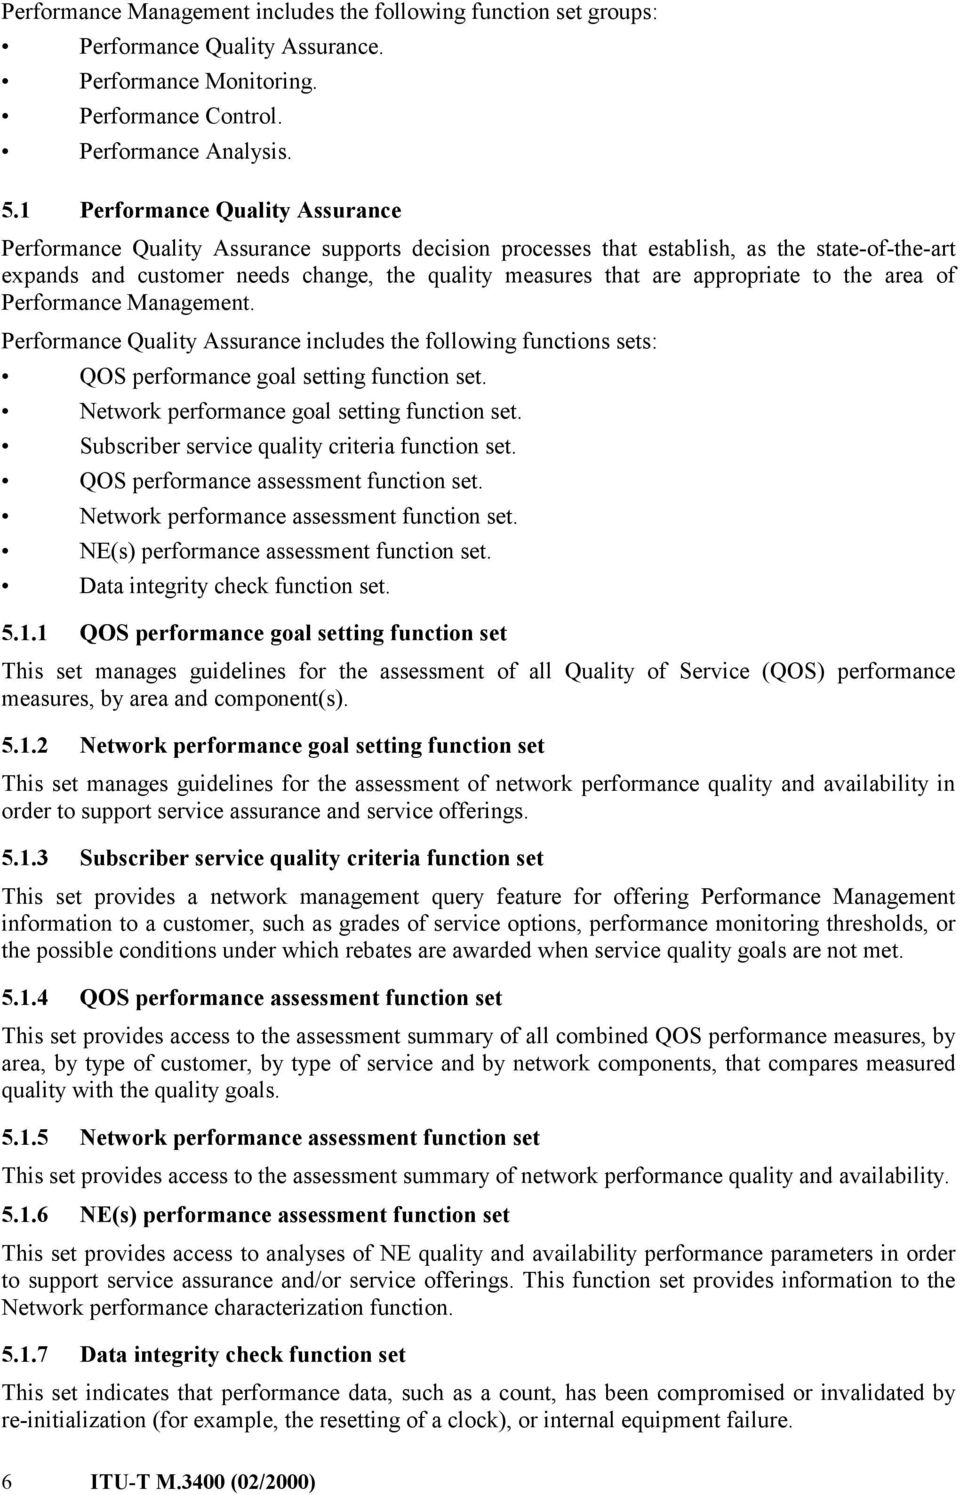 appropriate to the area of Performance Management. Performance Quality Assurance includes the following functions sets: QOS performance goal setting function set.